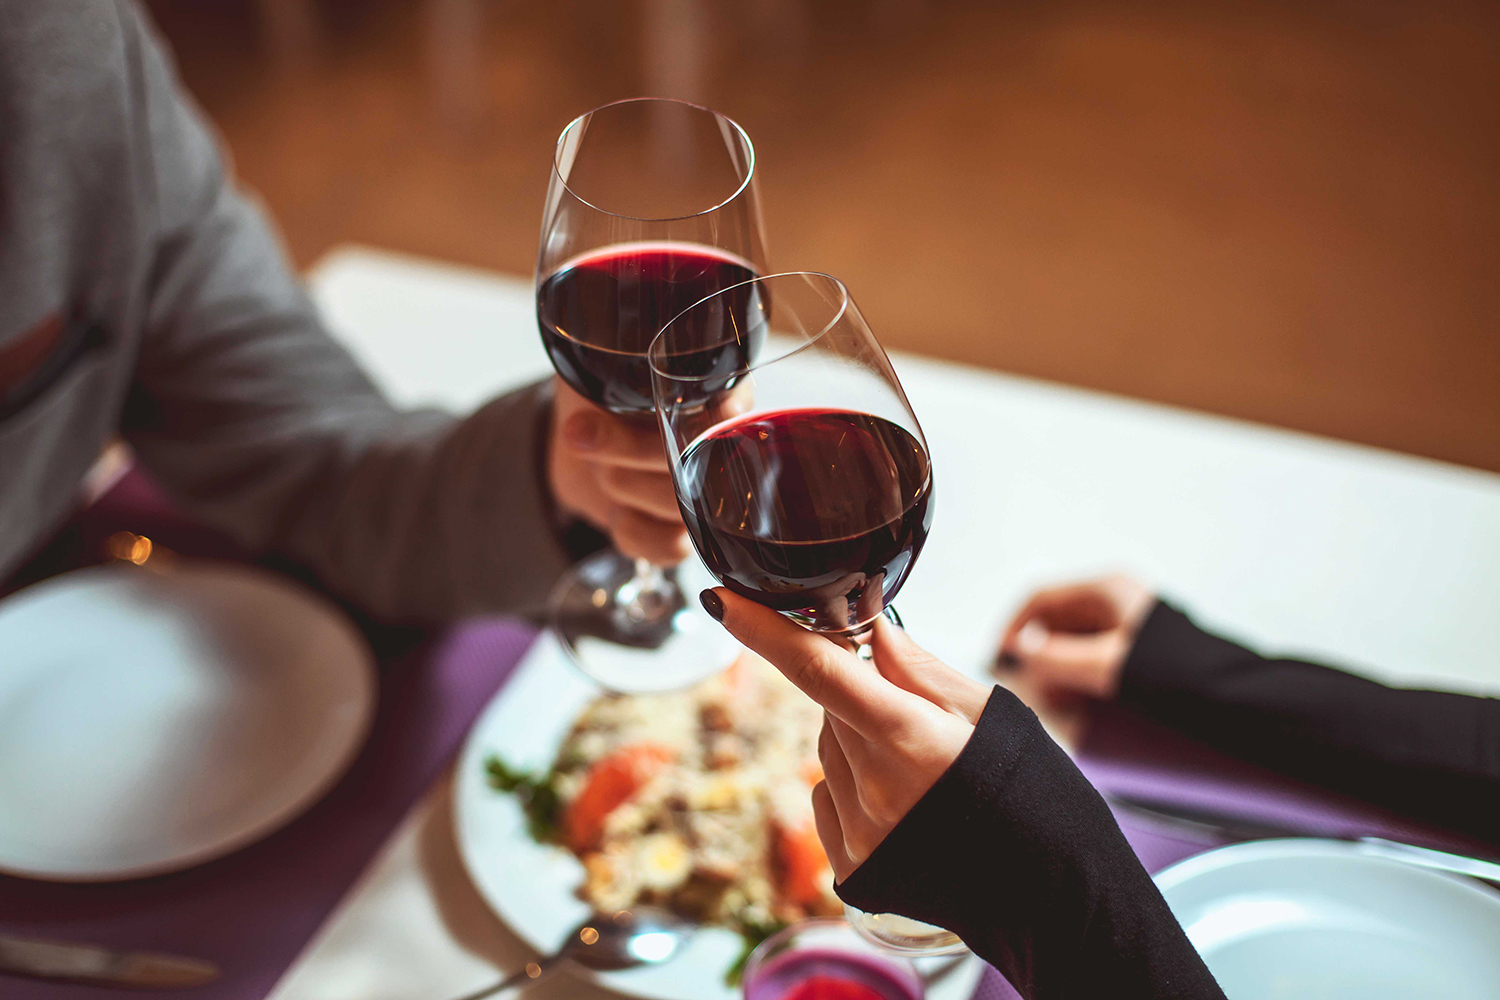 The wine dinners are highly social and educational evenings during which guests can get to know the winemakers and ask questions about their products.